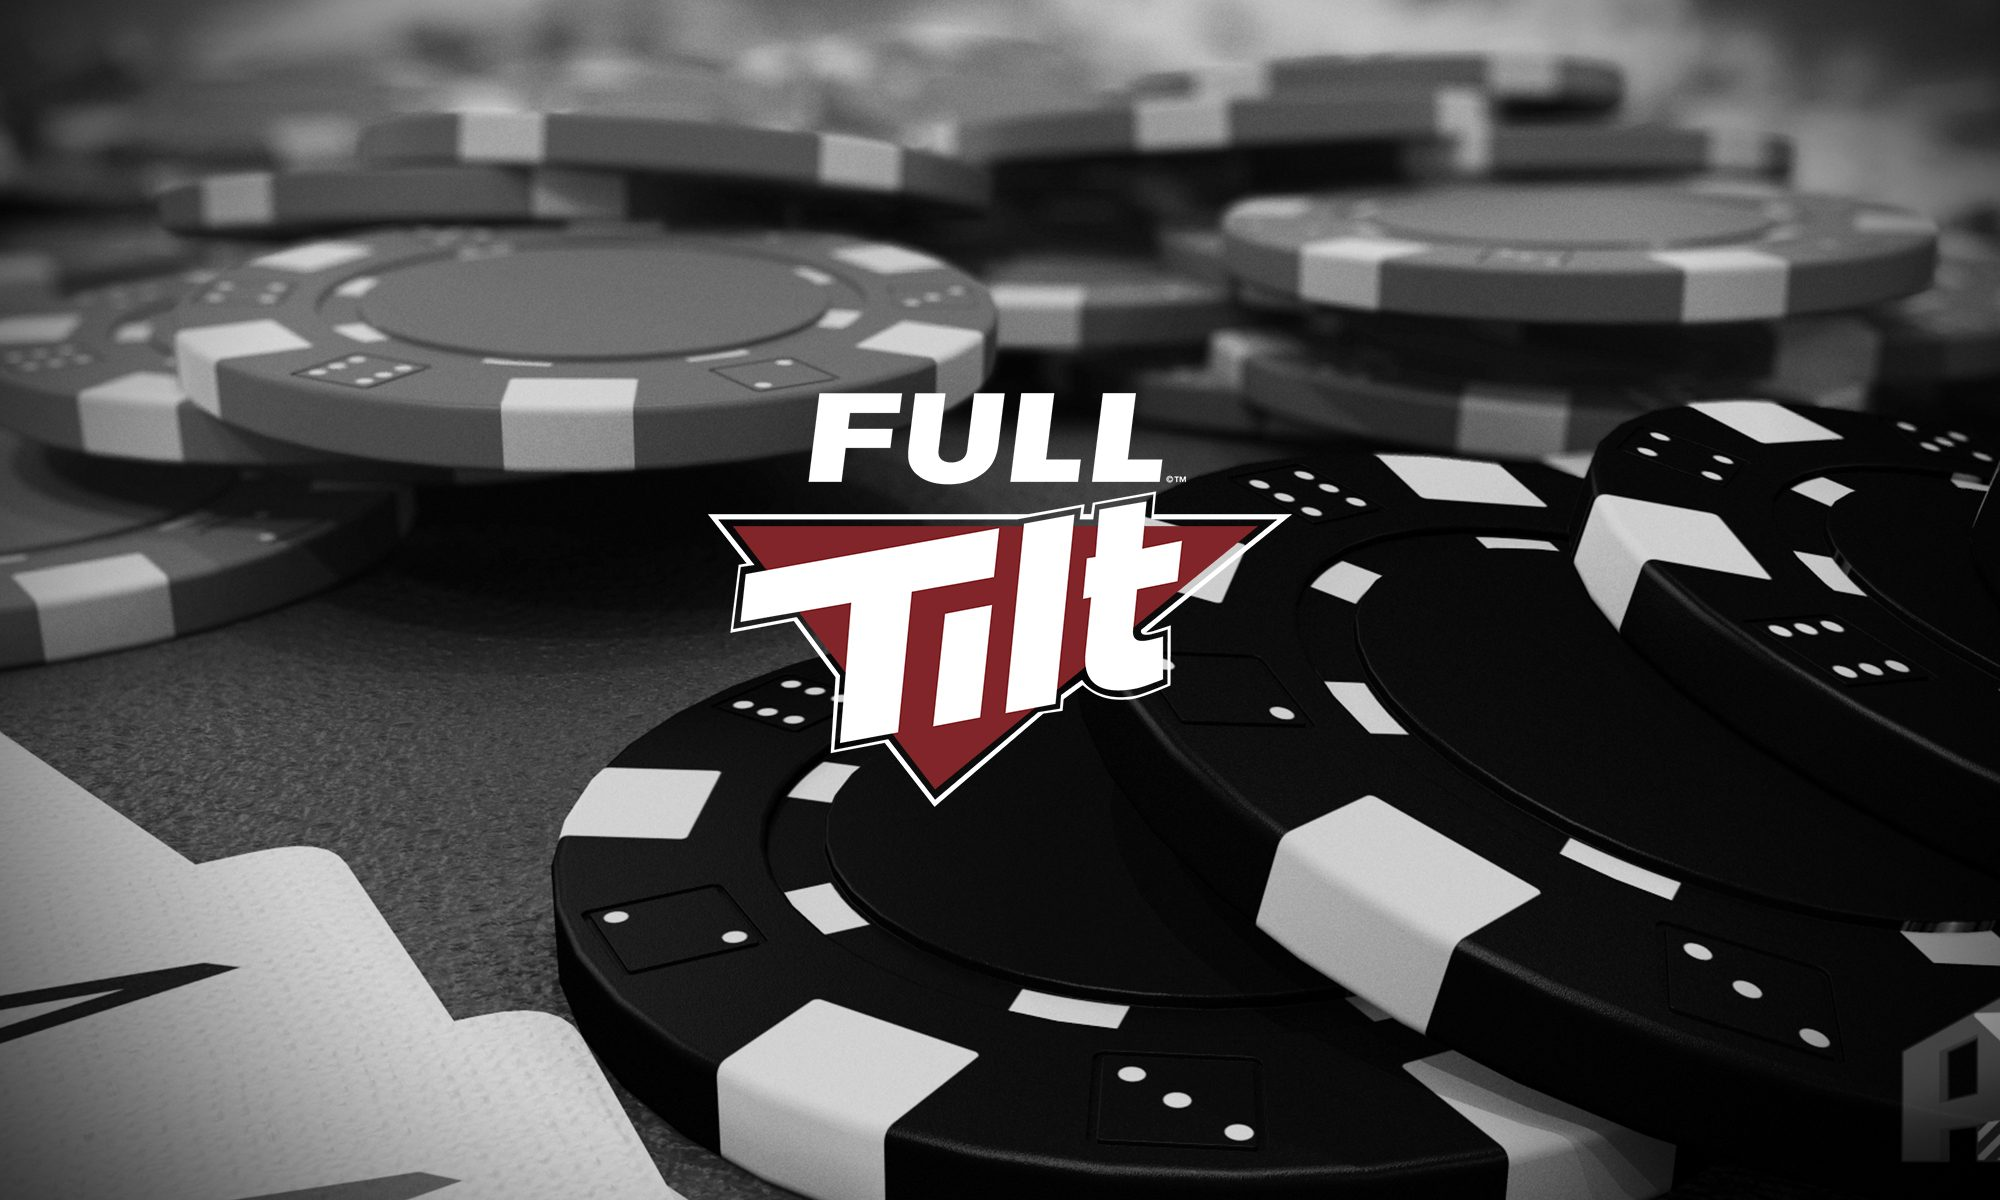 Full tilt poker stock